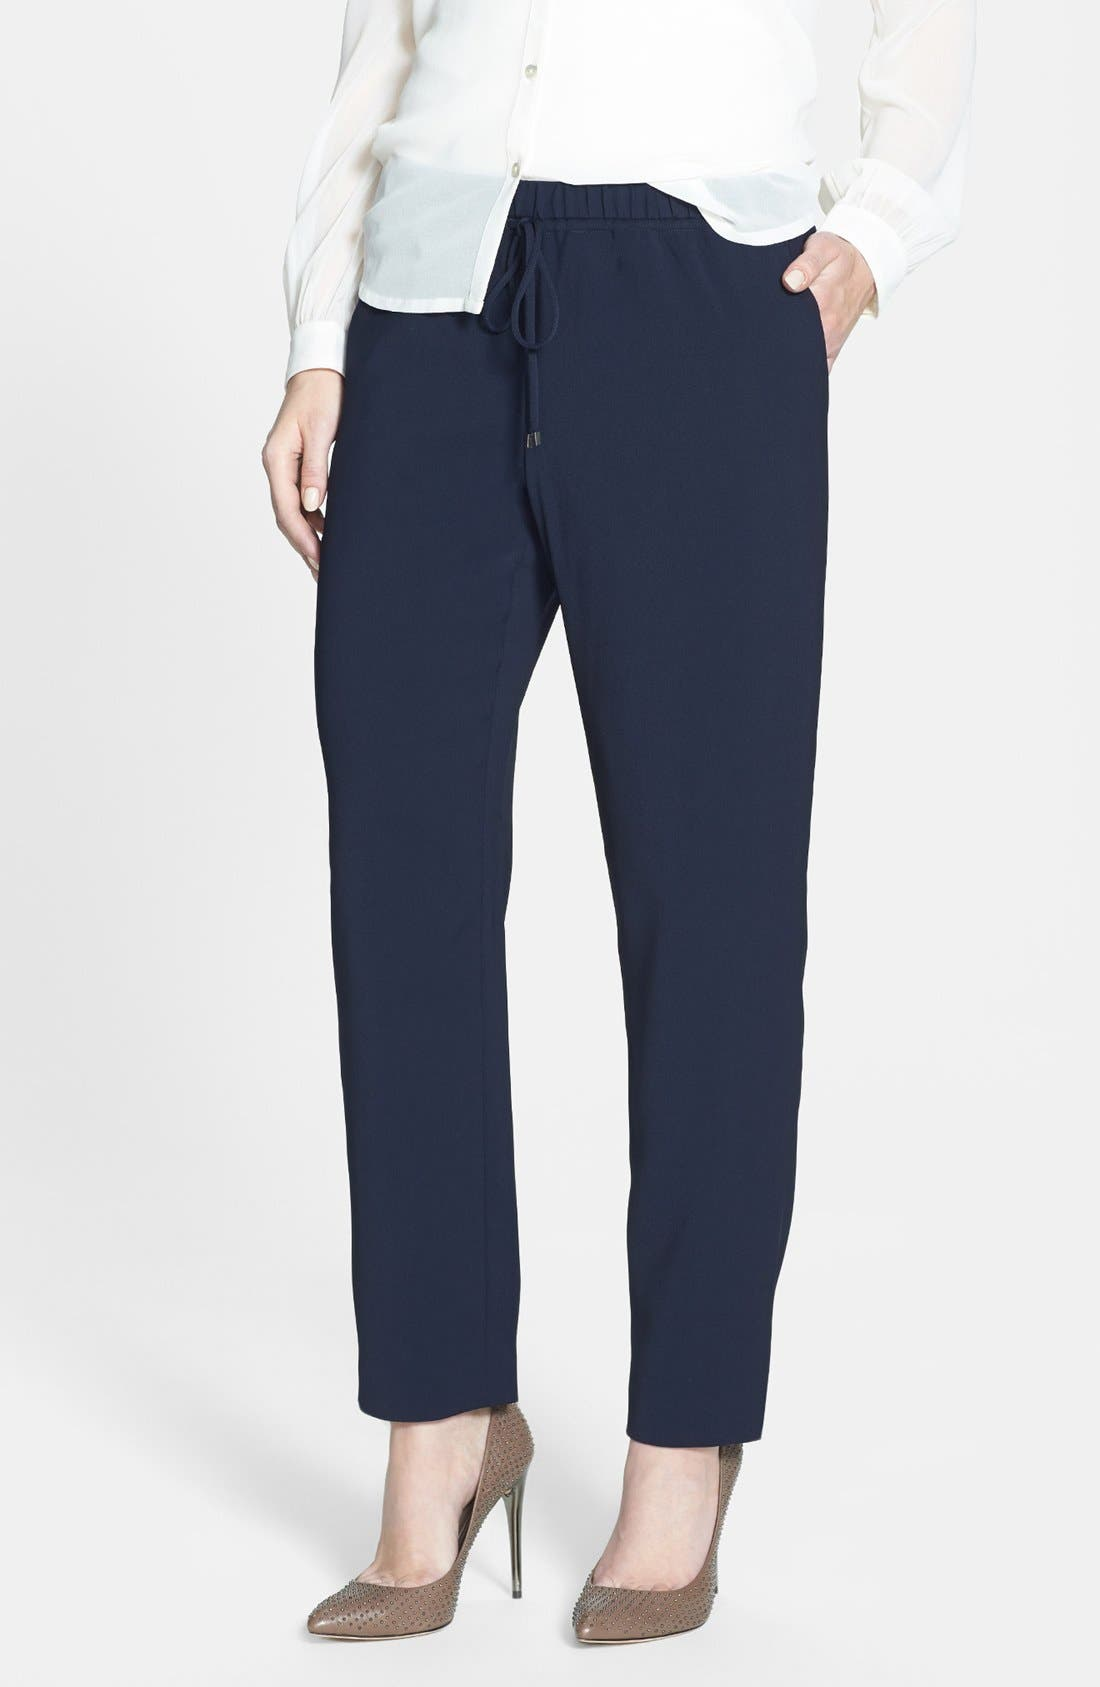 Alternate Image 1 Selected - T Tahari 'Loren' Drawstring Waist Stretch Twill Pants